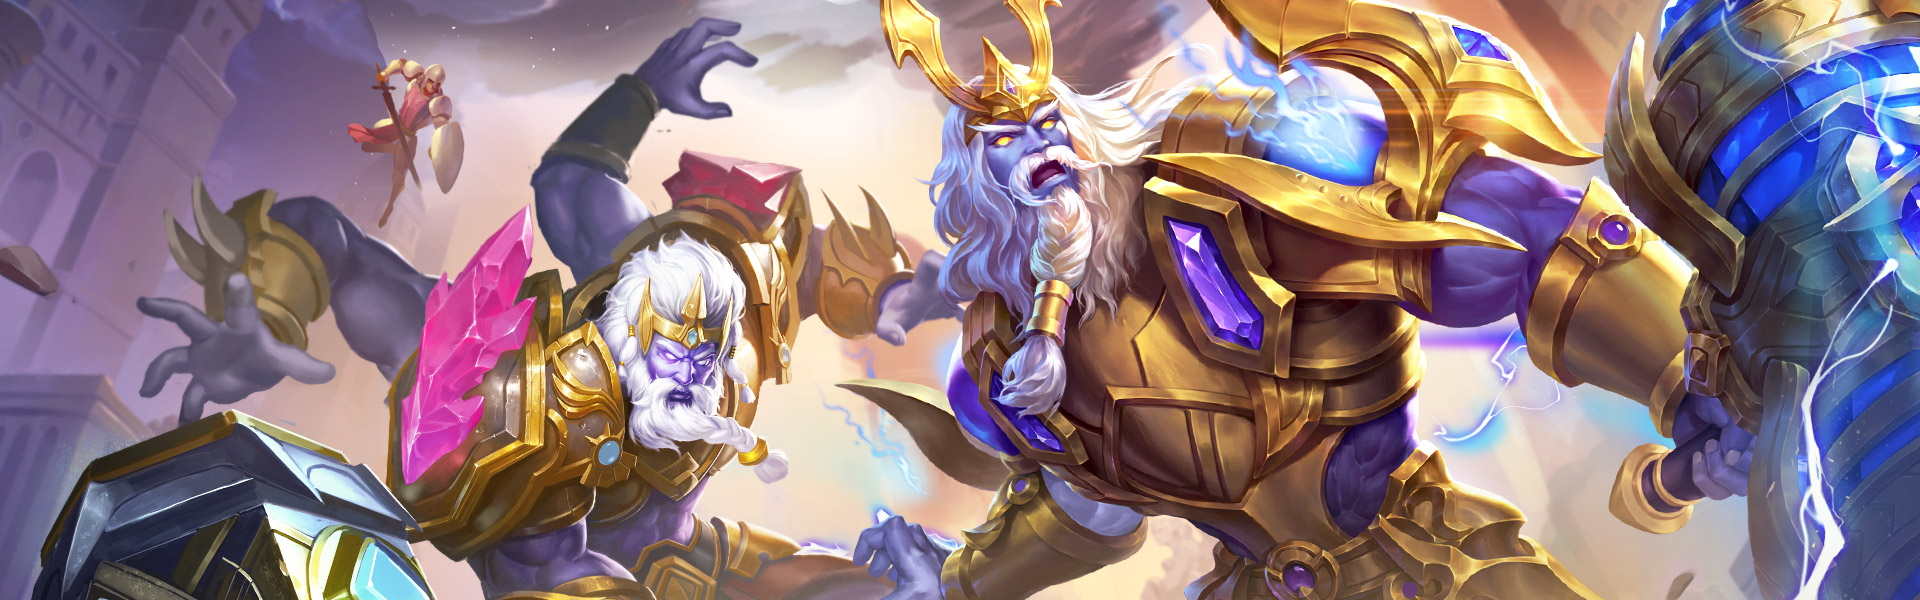 Heroes Evolved Update - October 10th 2018